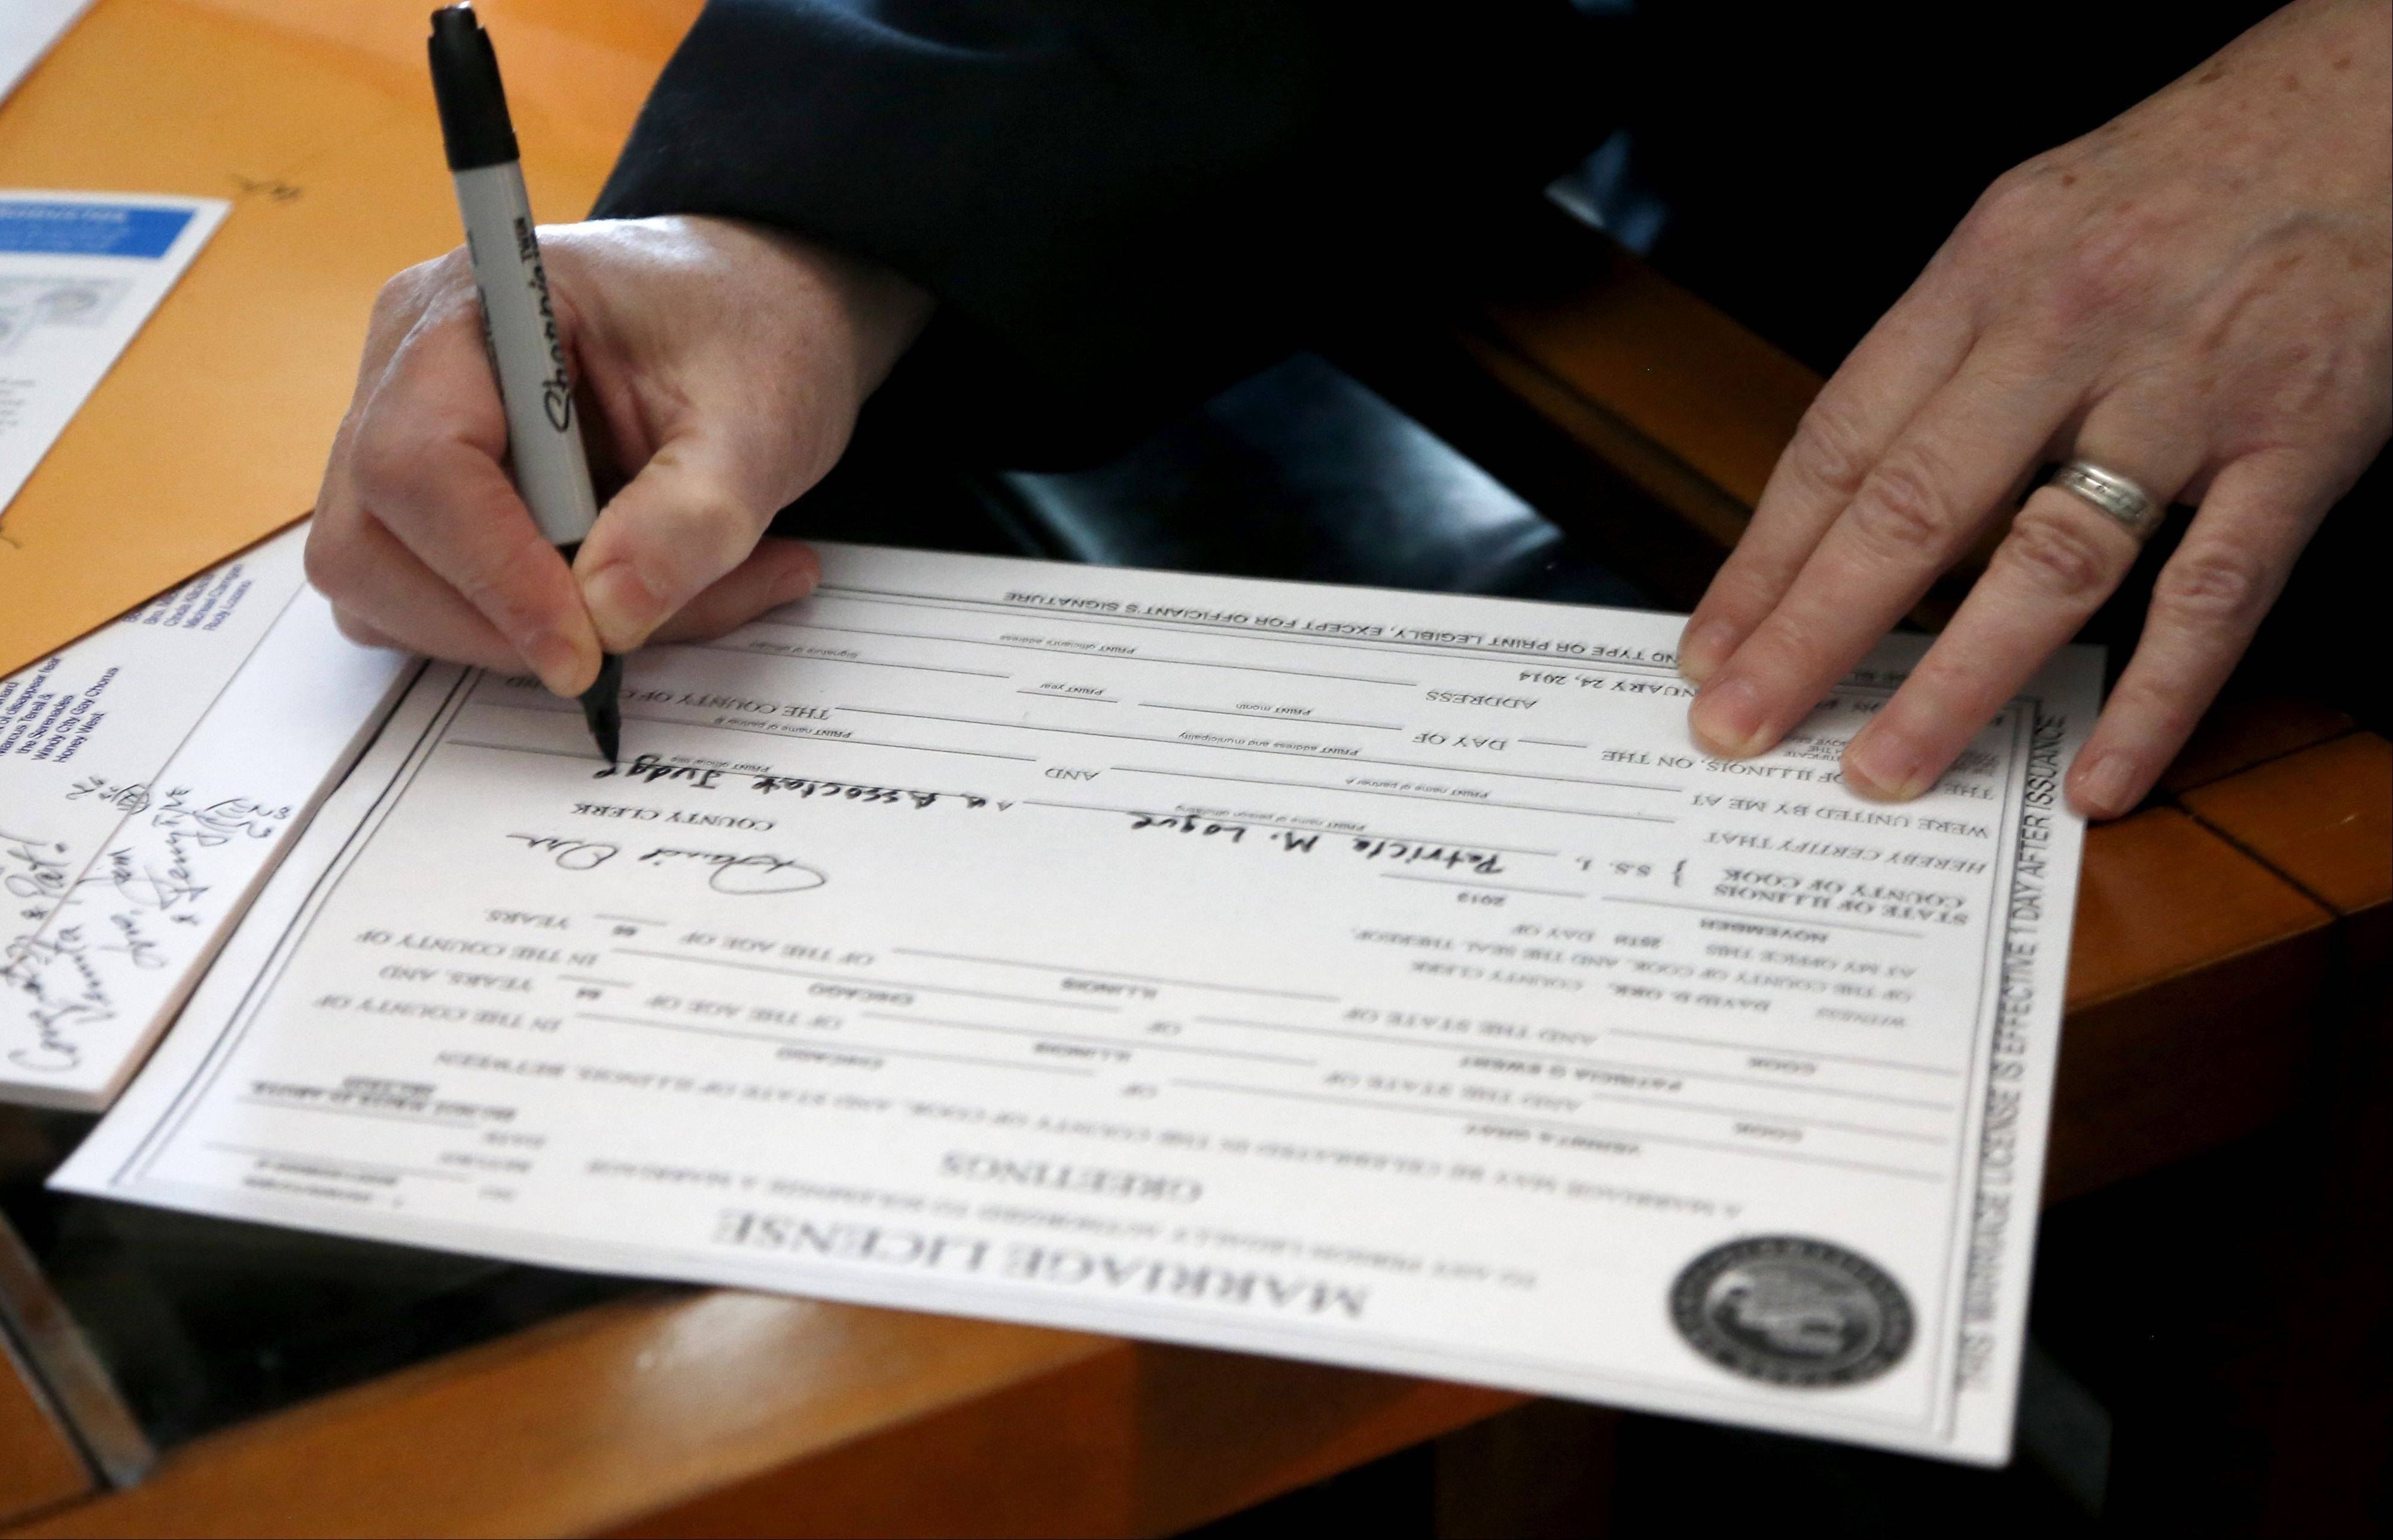 Cook County Judge Patricia Logue signs the marriage license of Vernita Gray and Patricia Ewert after their wedding ceremony on Wednesday.